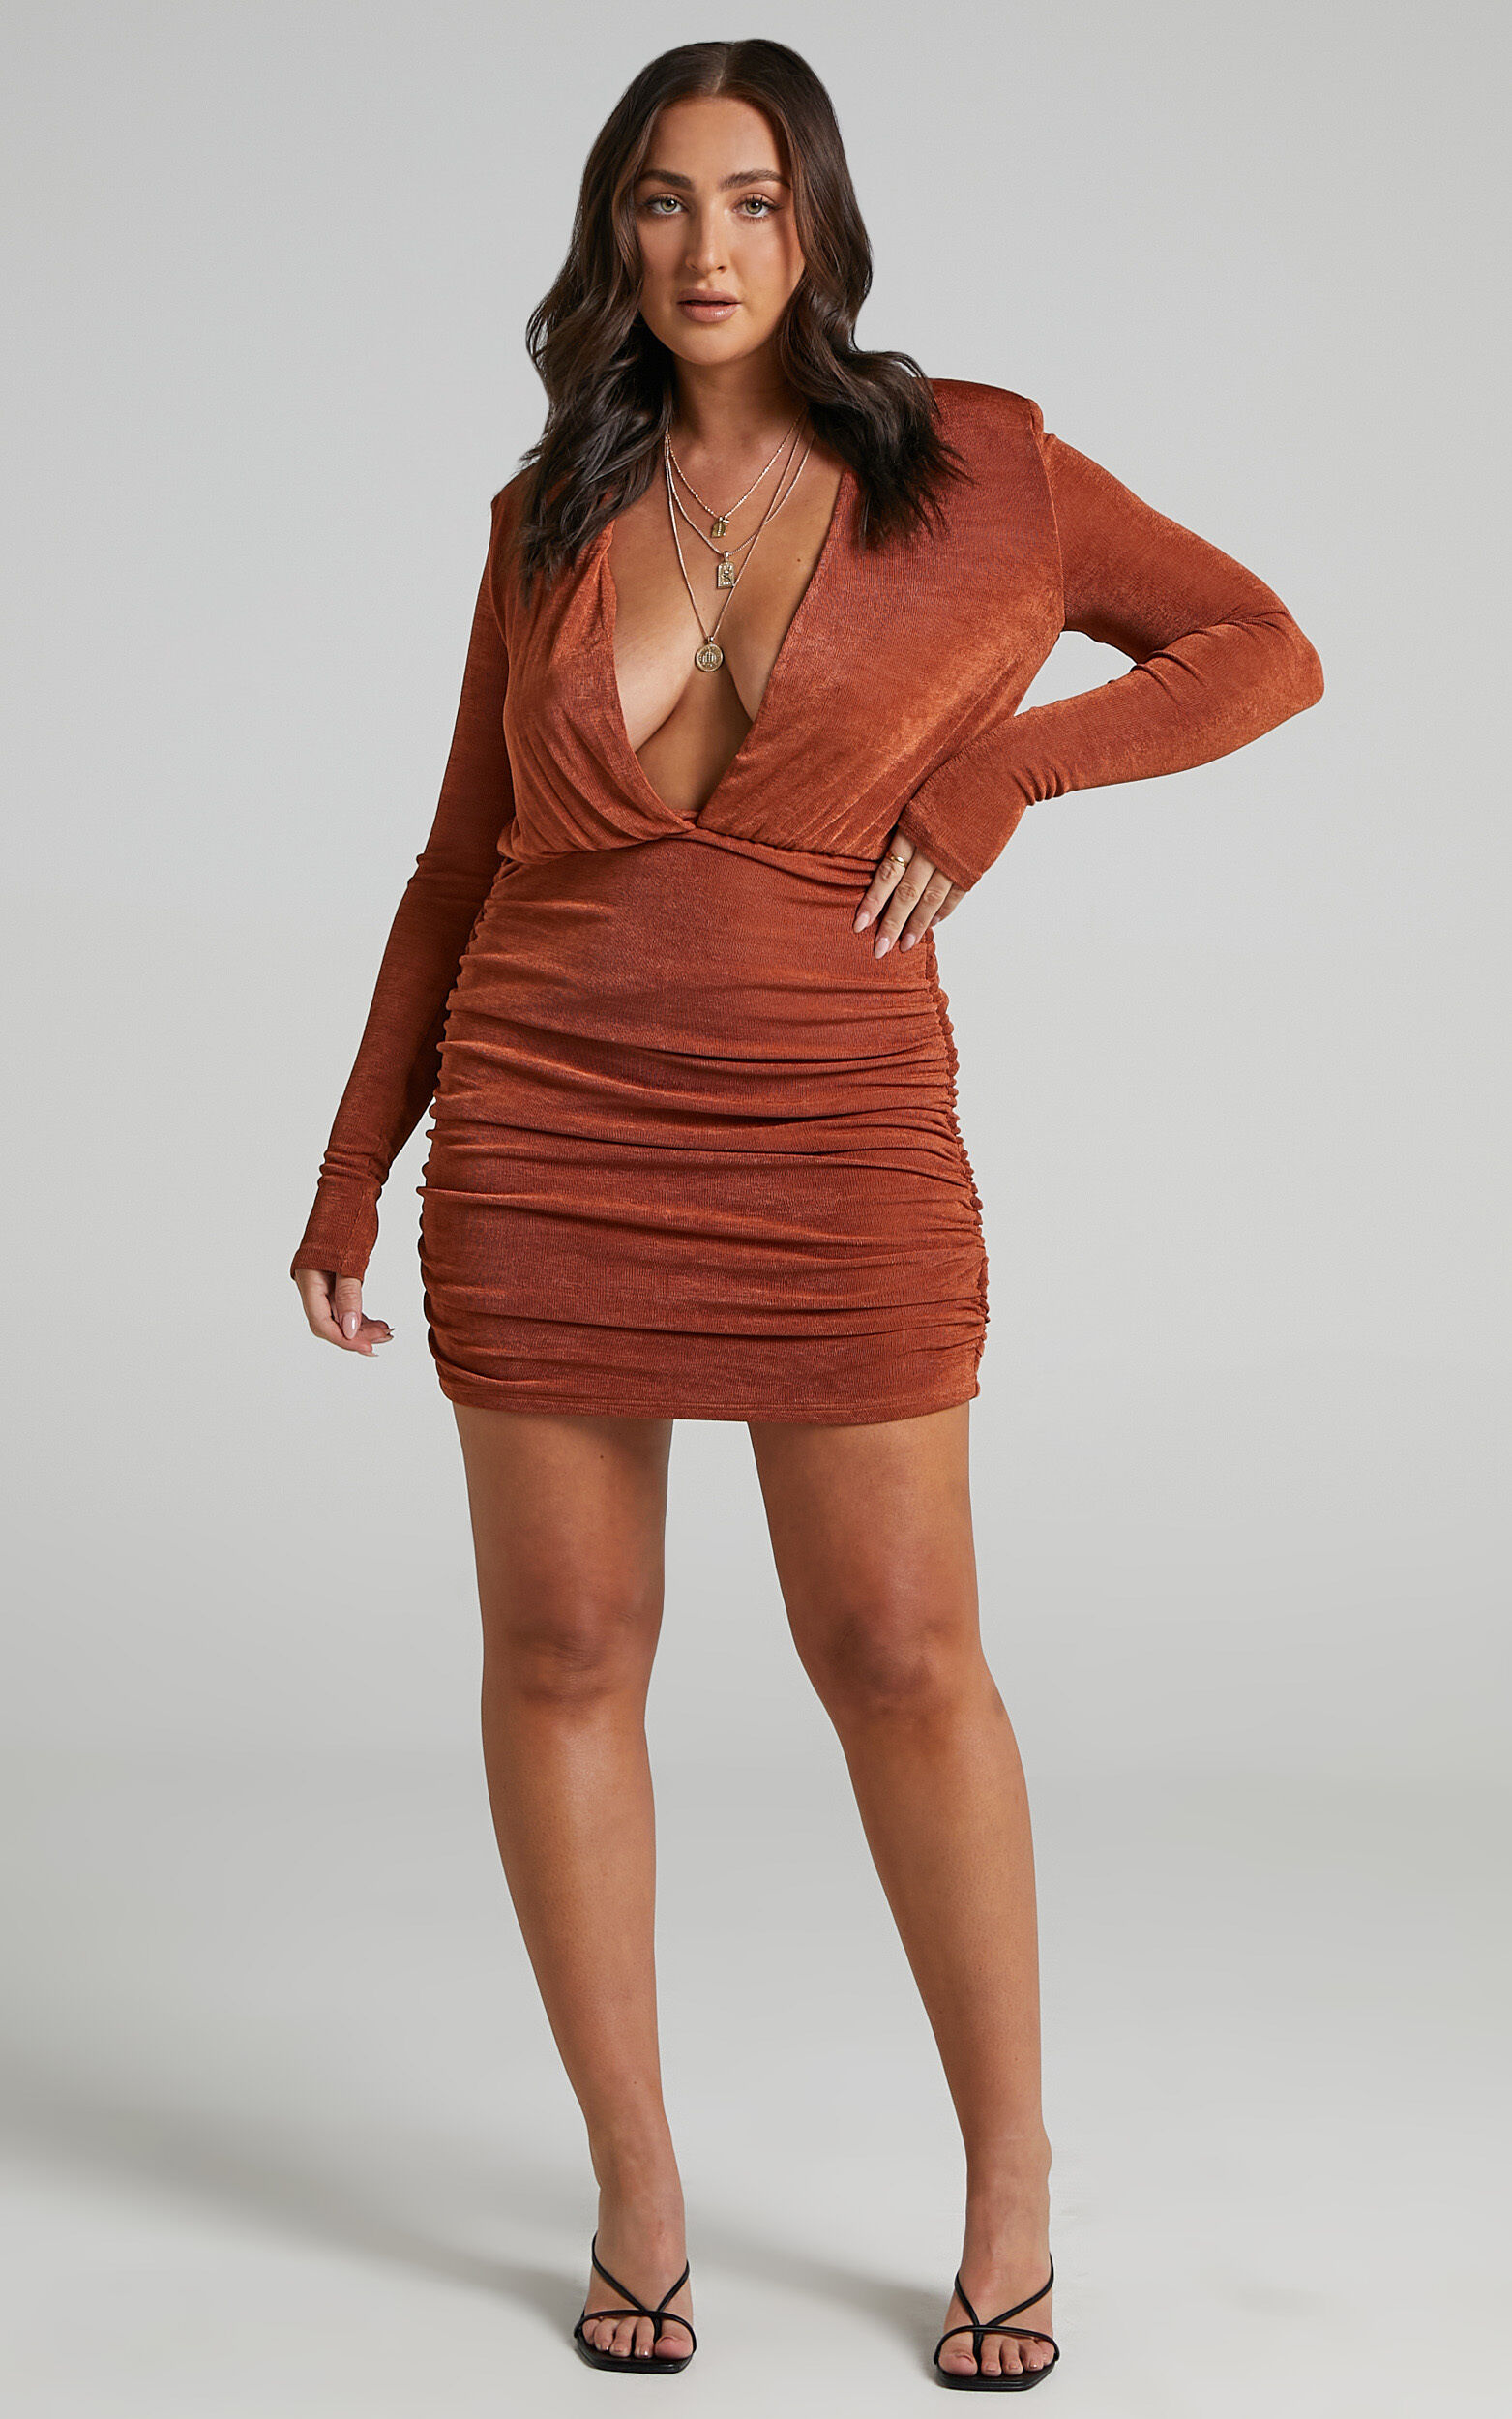 Kaitie Mini Deep V Open Front Ruched Dress in Paprika - 06, RED4, super-hi-res image number null